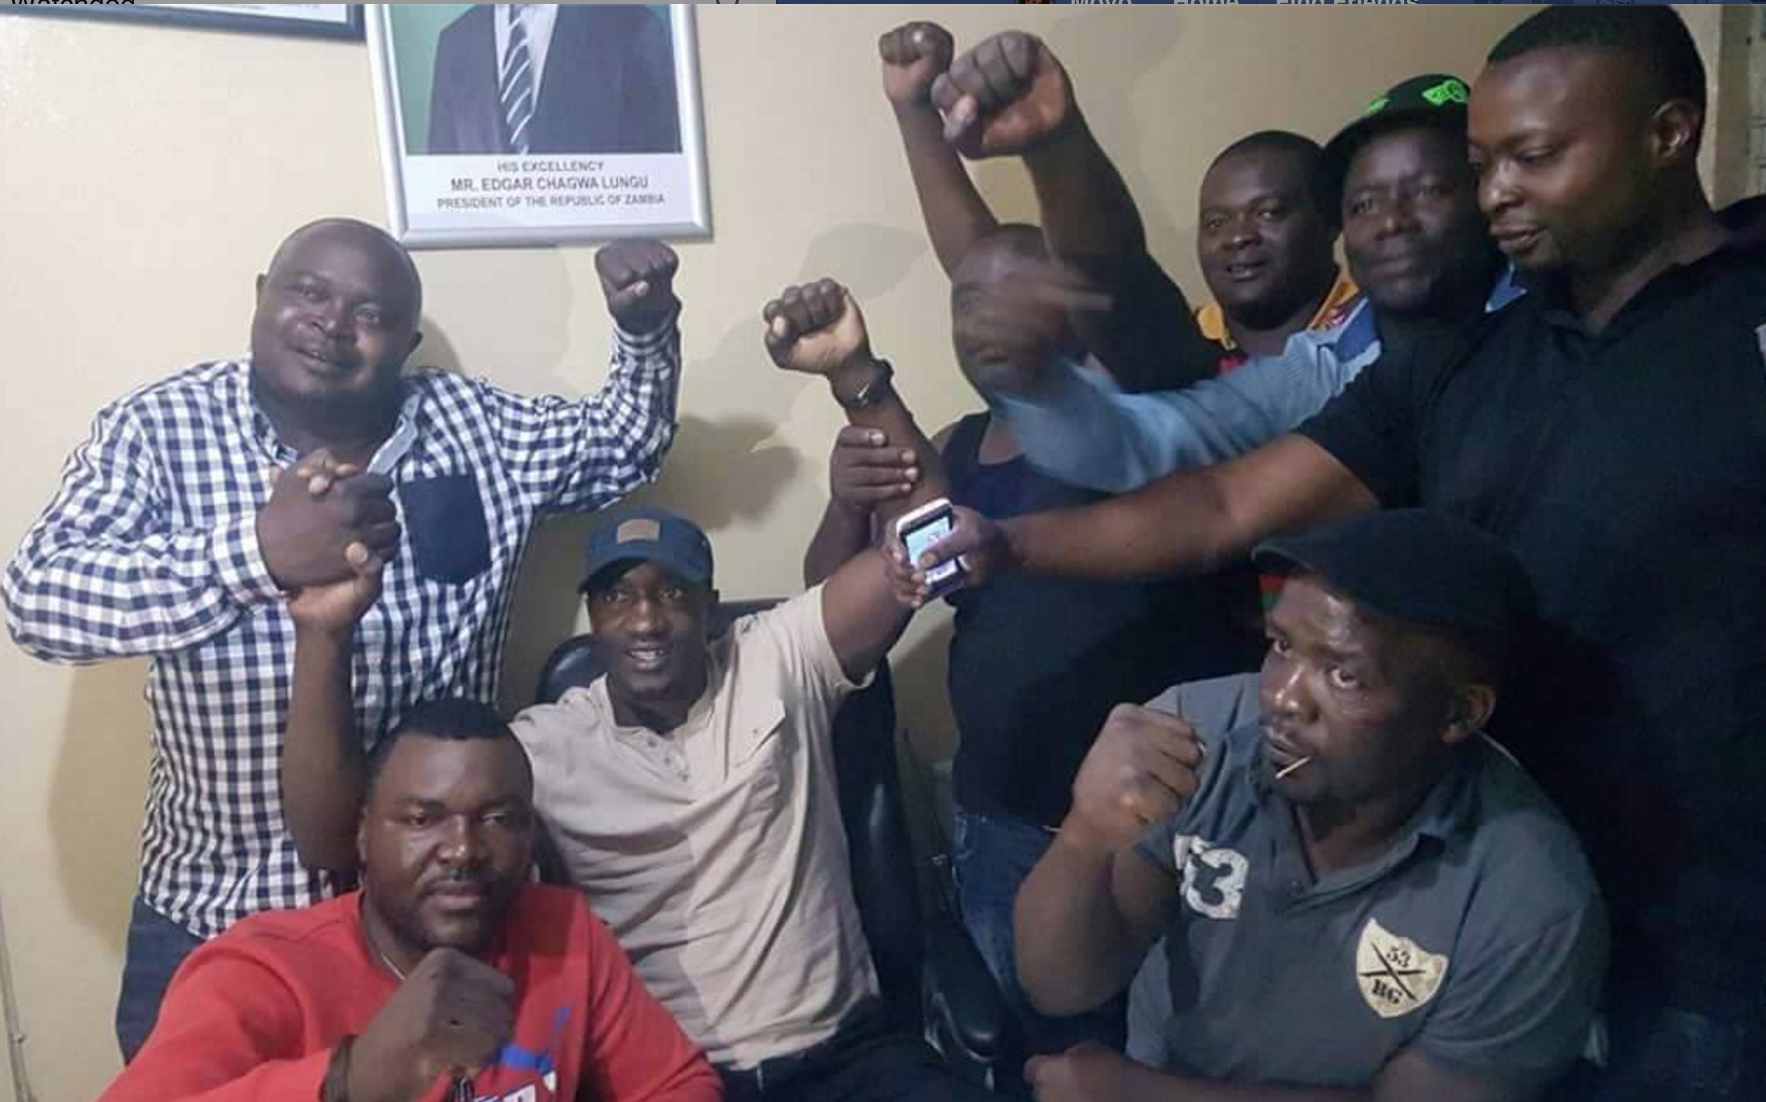 PF sends thugs to beat UPND supporters